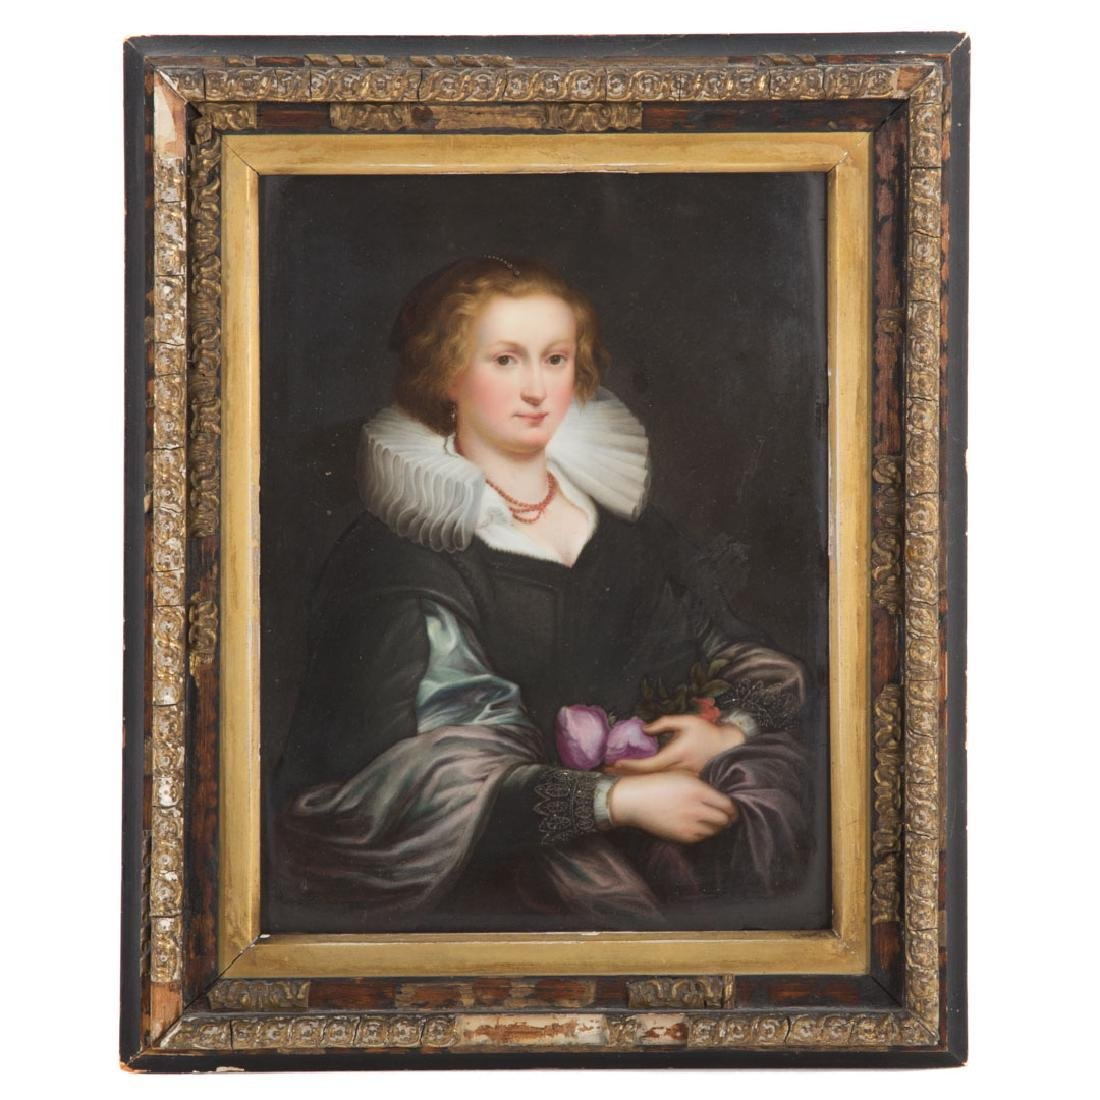 KPM porcelain plaque of a noblewoman